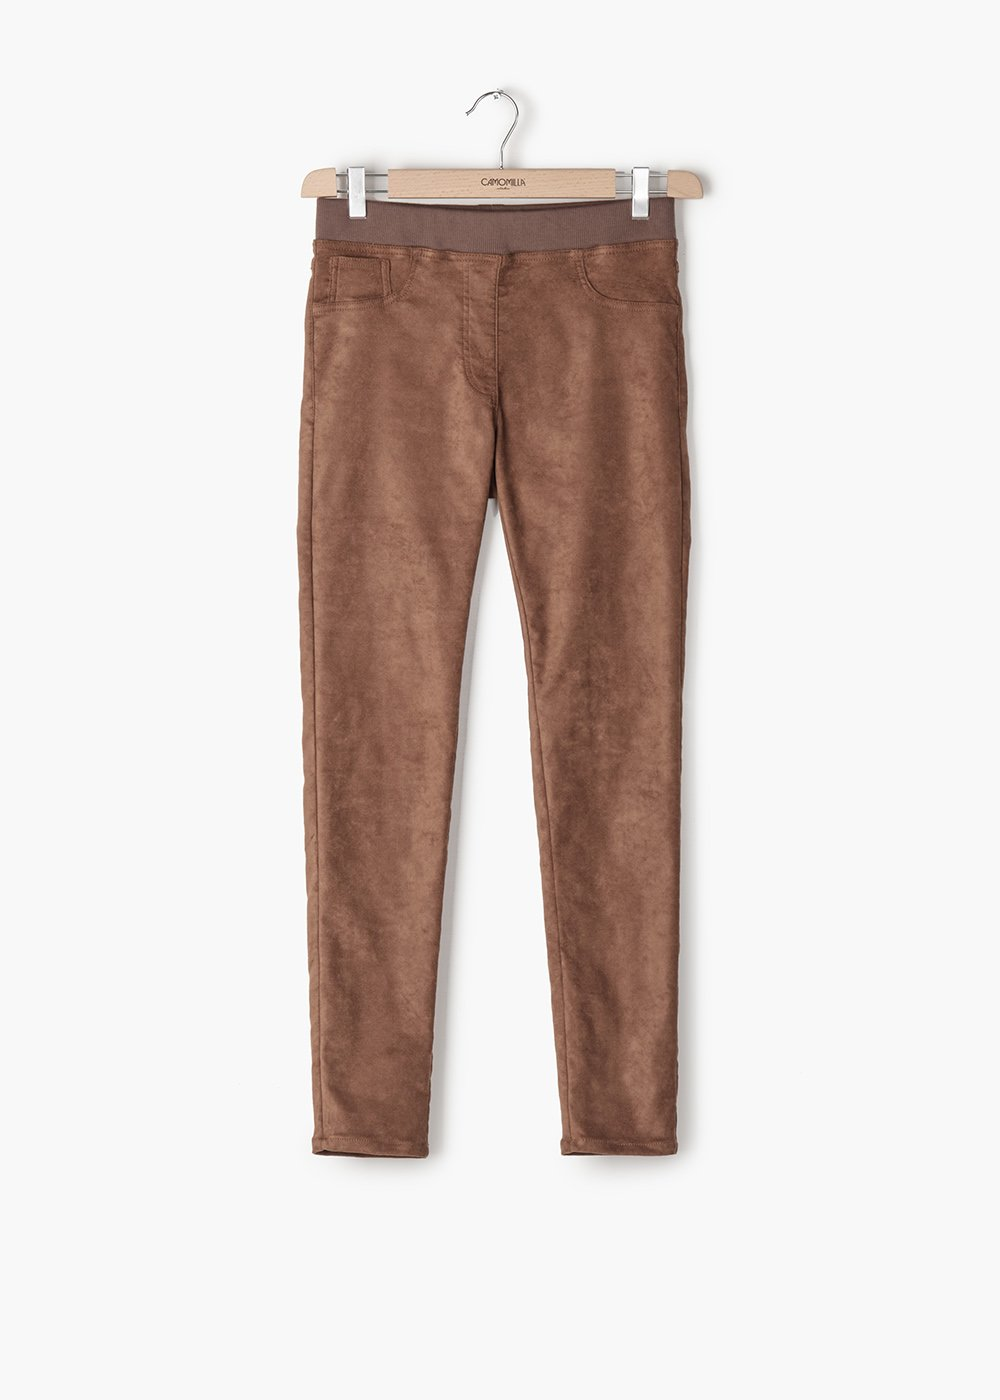 Kelly pants in eco-suede with matching elastic band